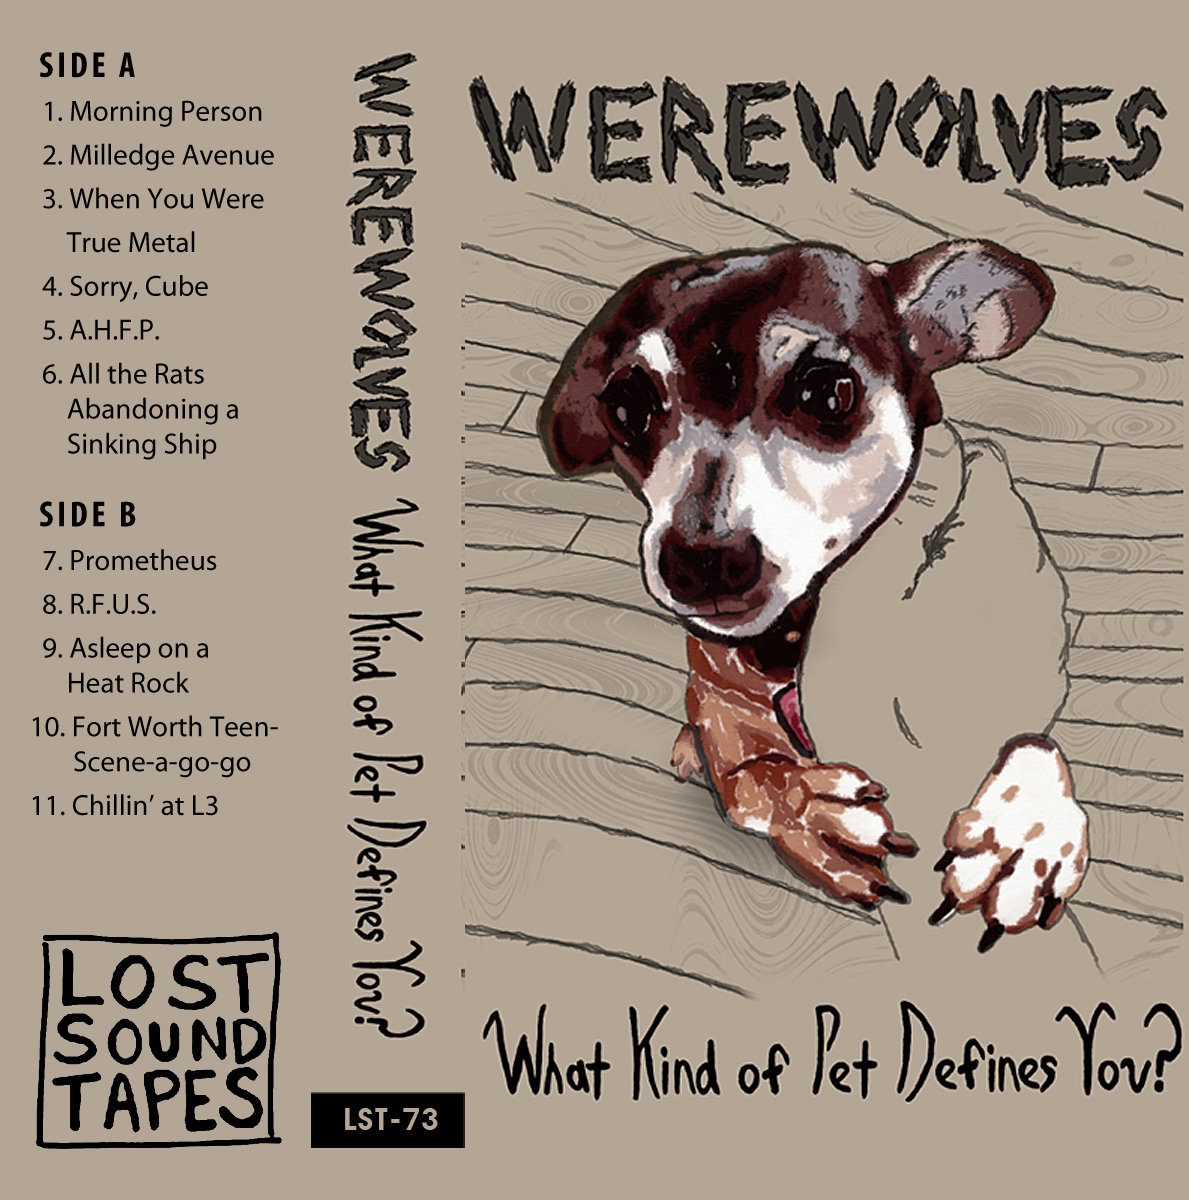 What Kind of Pet Defines You? | Lost Sound Tapes